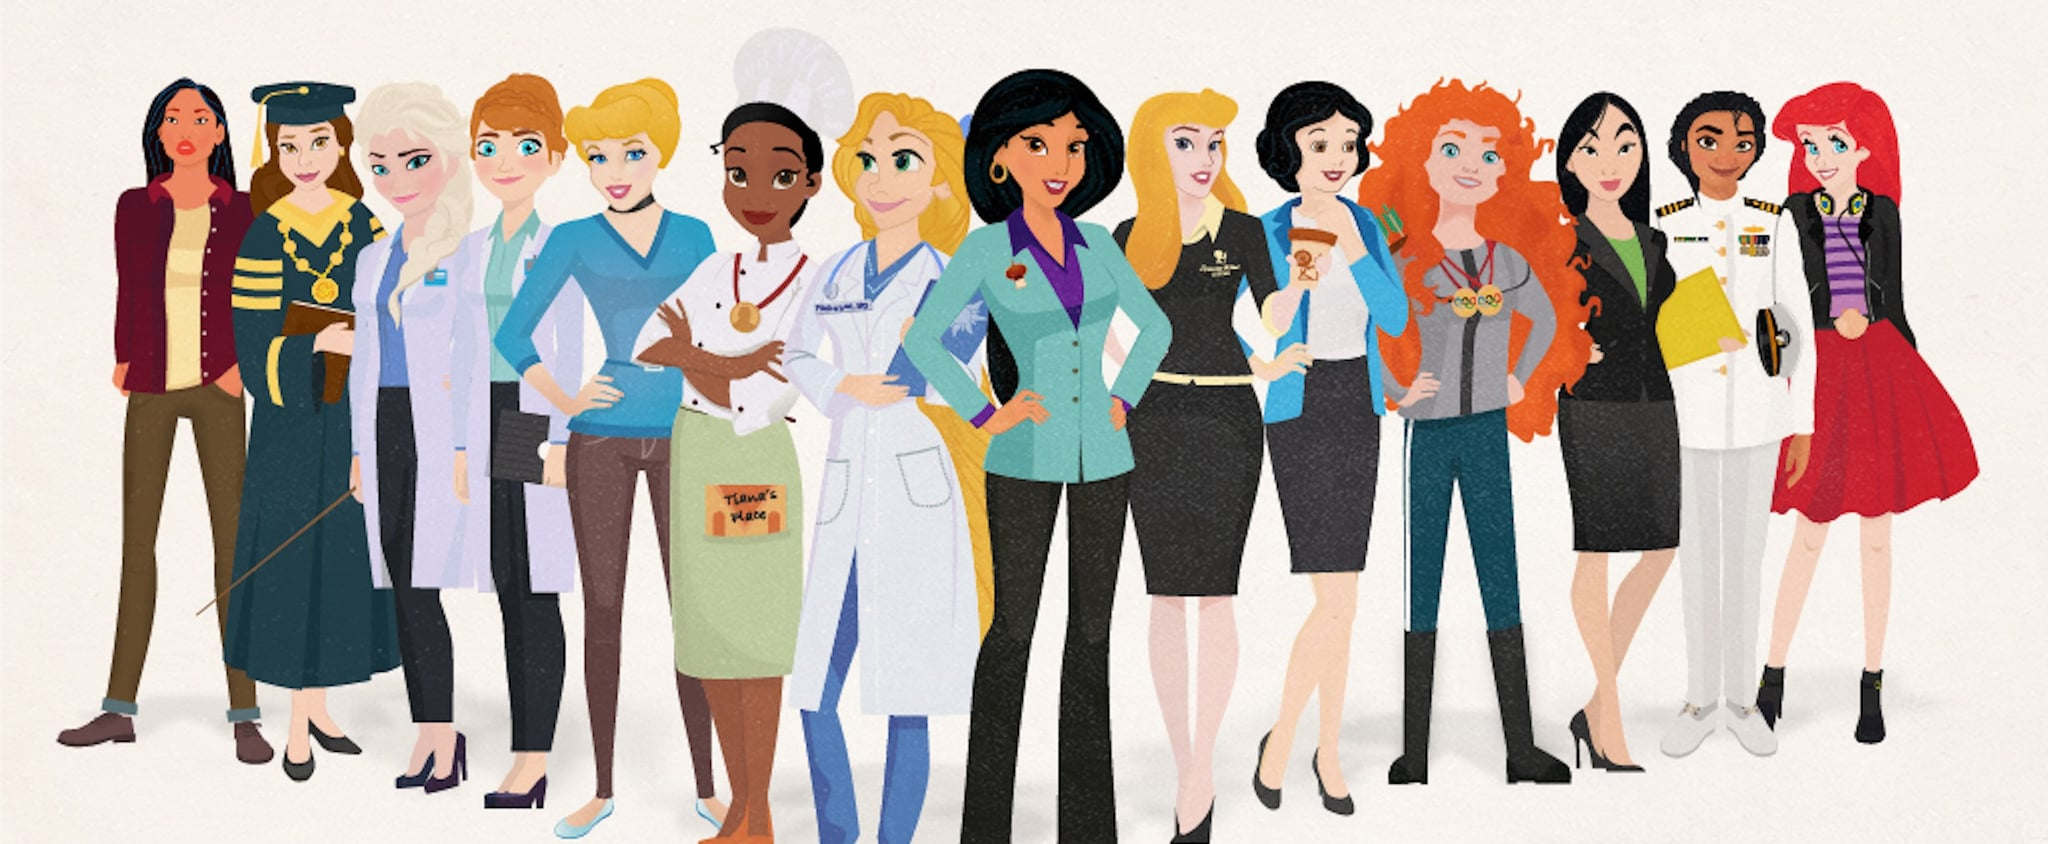 Disney Princesses as Career Women